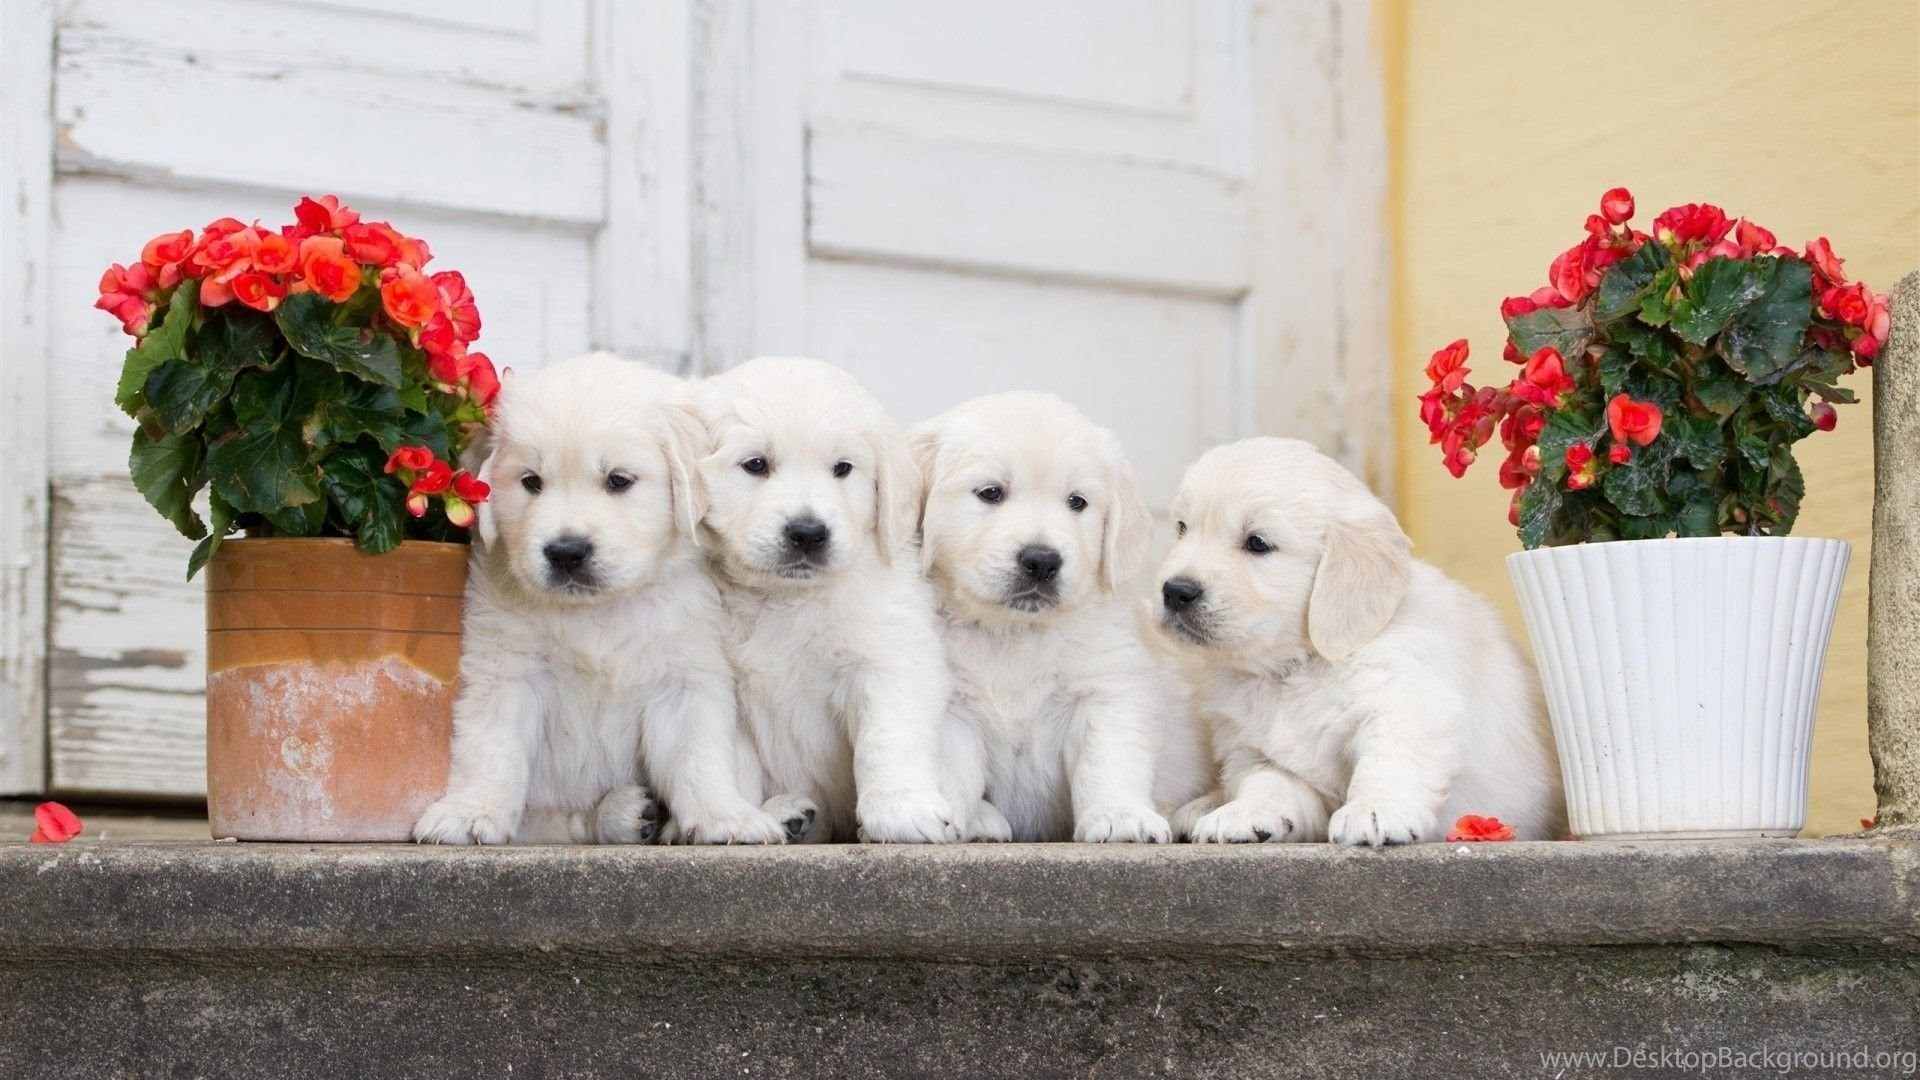 white puppies wallpapers hd free download of cute puppies desktop